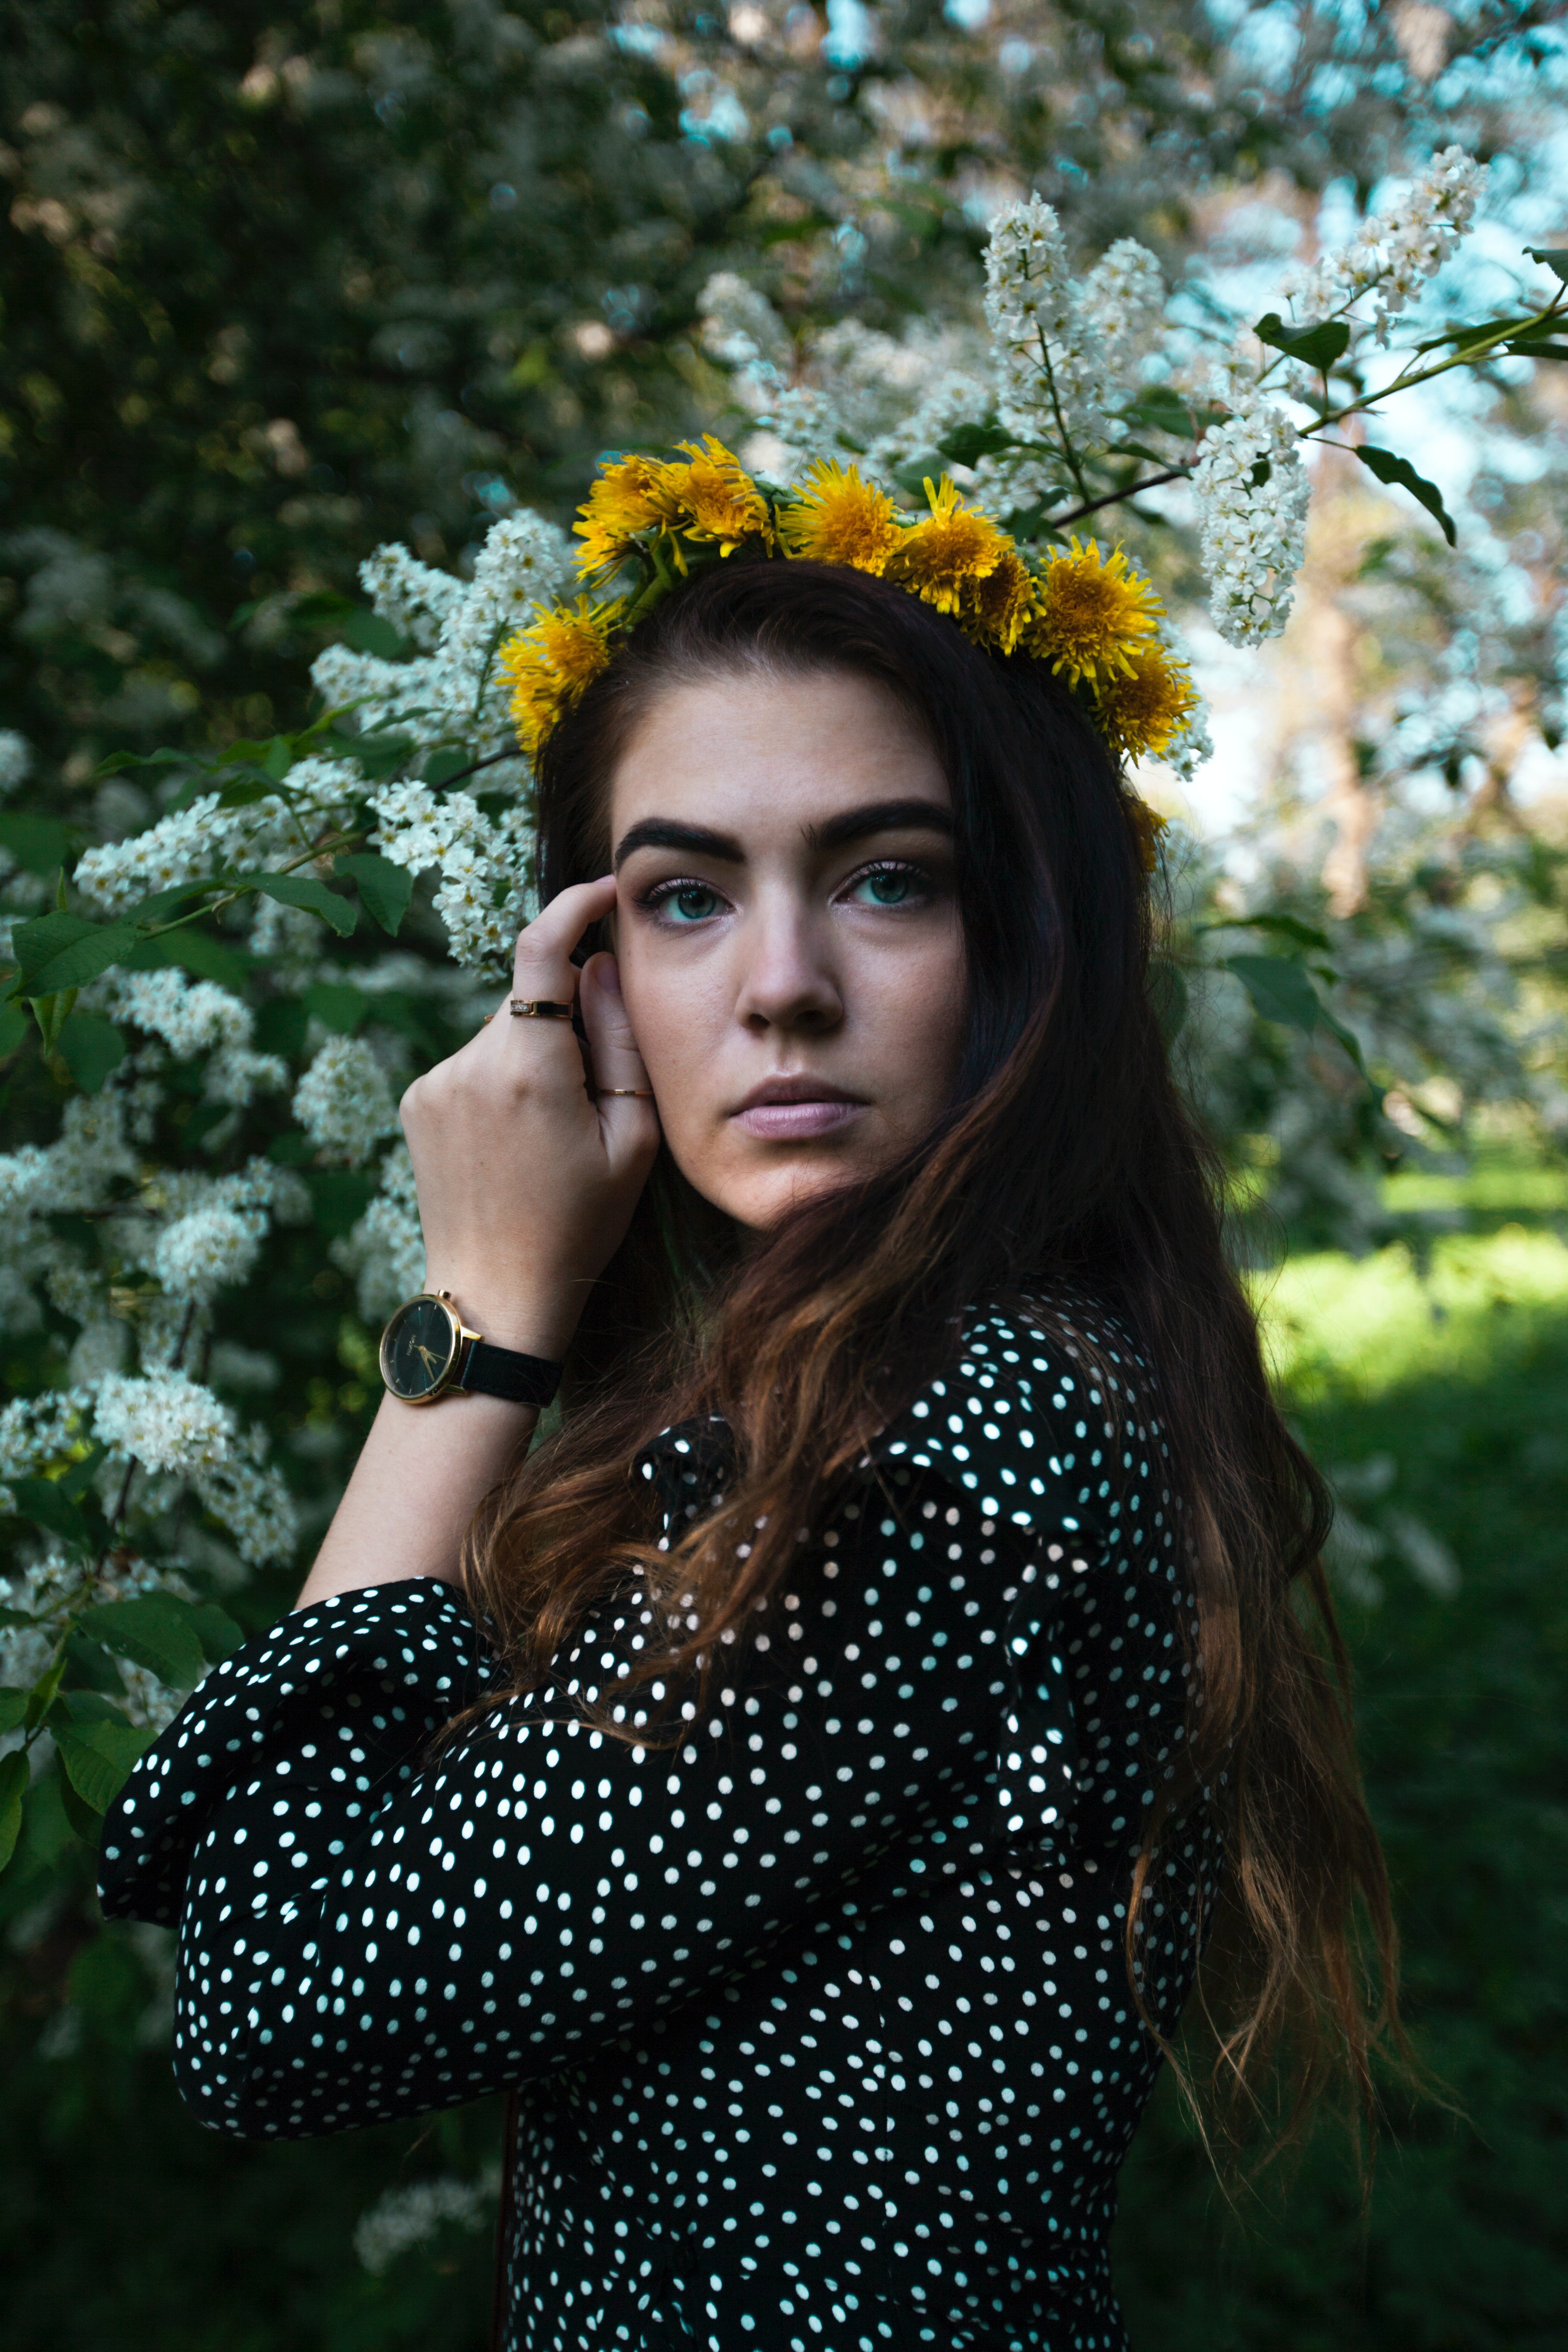 Photography Of Wearing Flower Crown Free Stock Photo